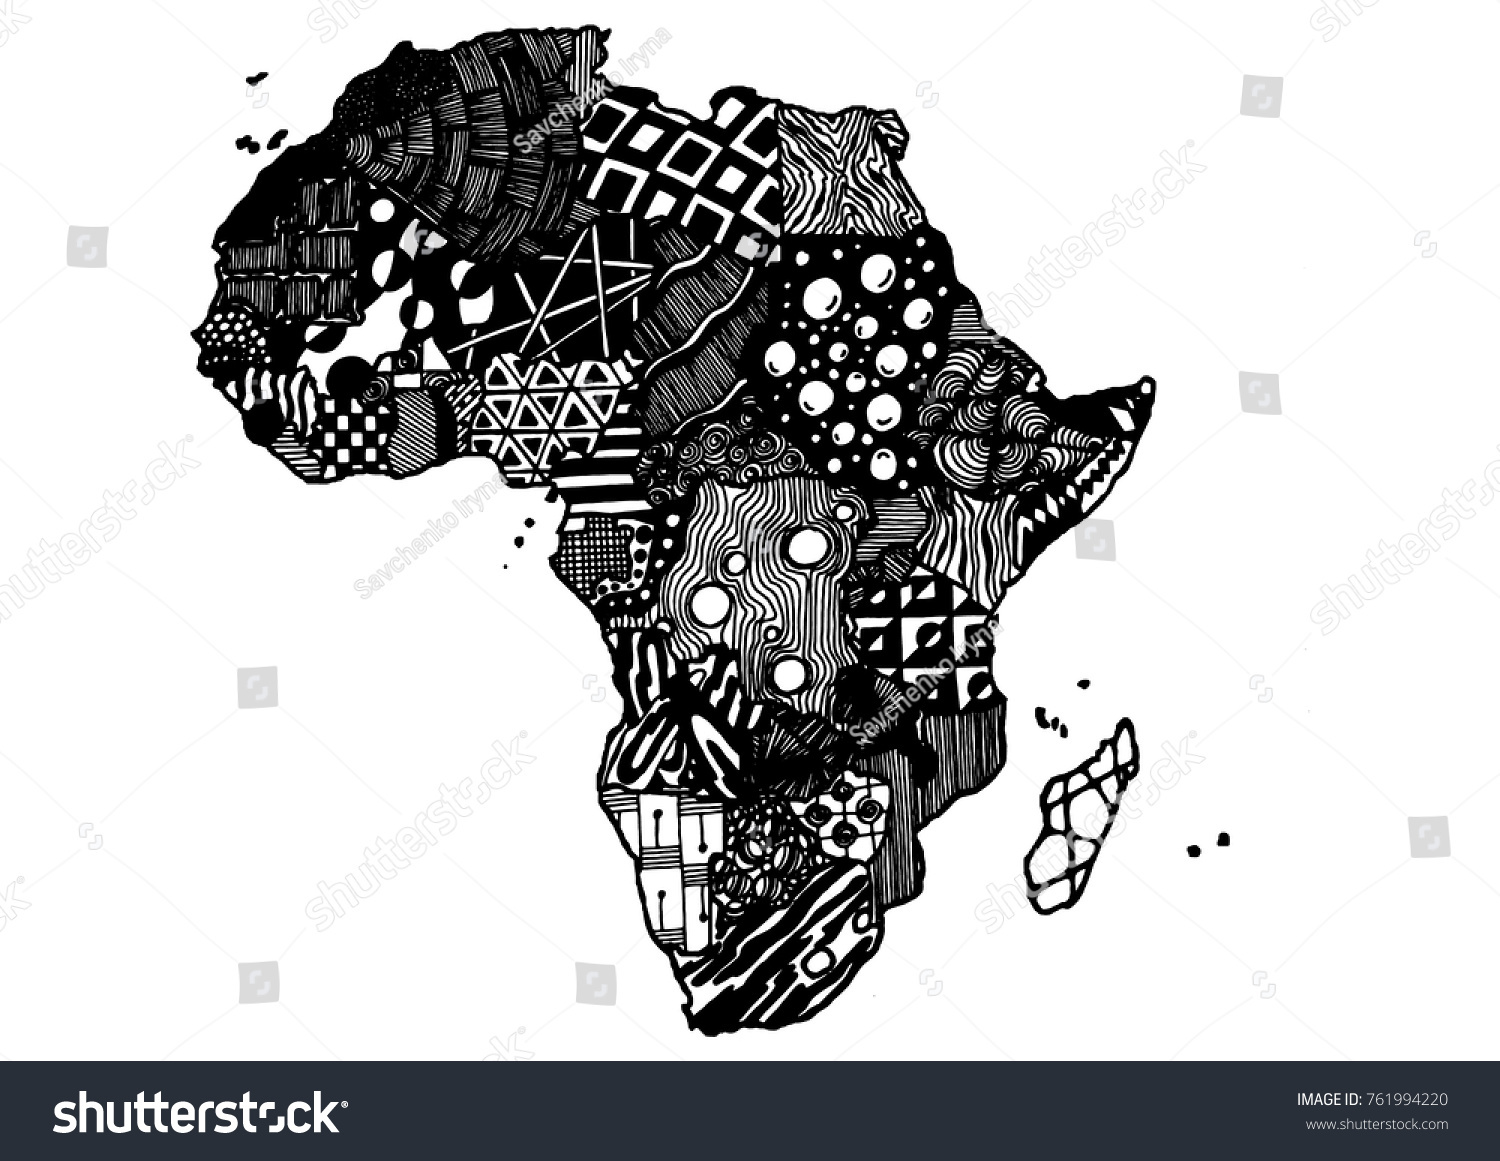 Africa Continent Map Sketch Hand Drawn Doodle Style Freehand Abstract Element With